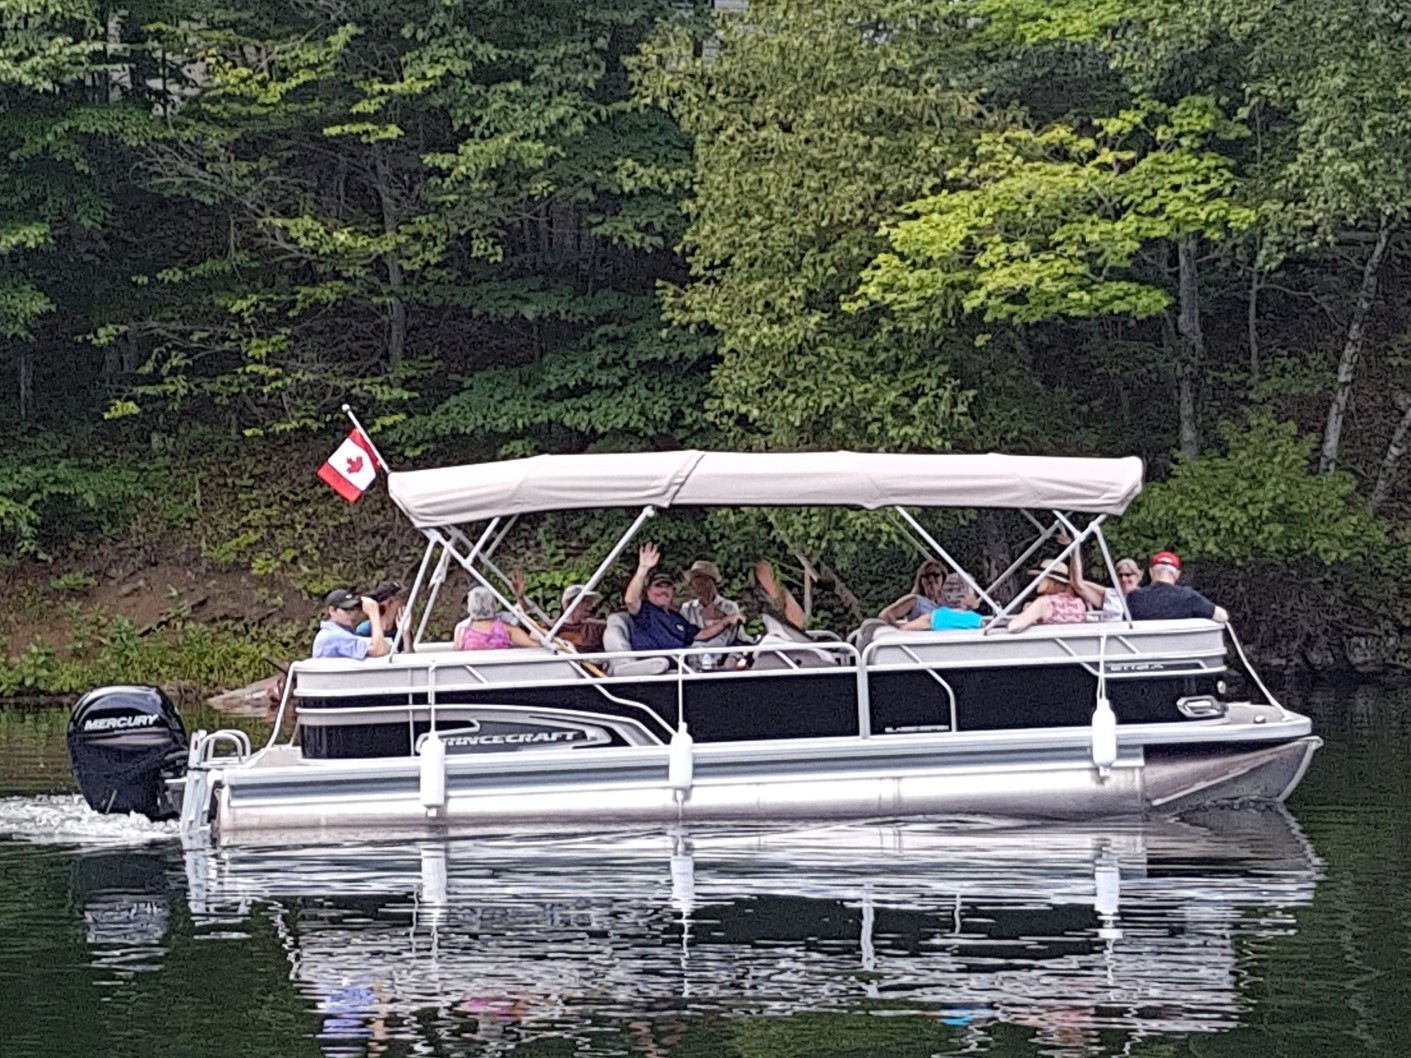 Image of people on a boat.